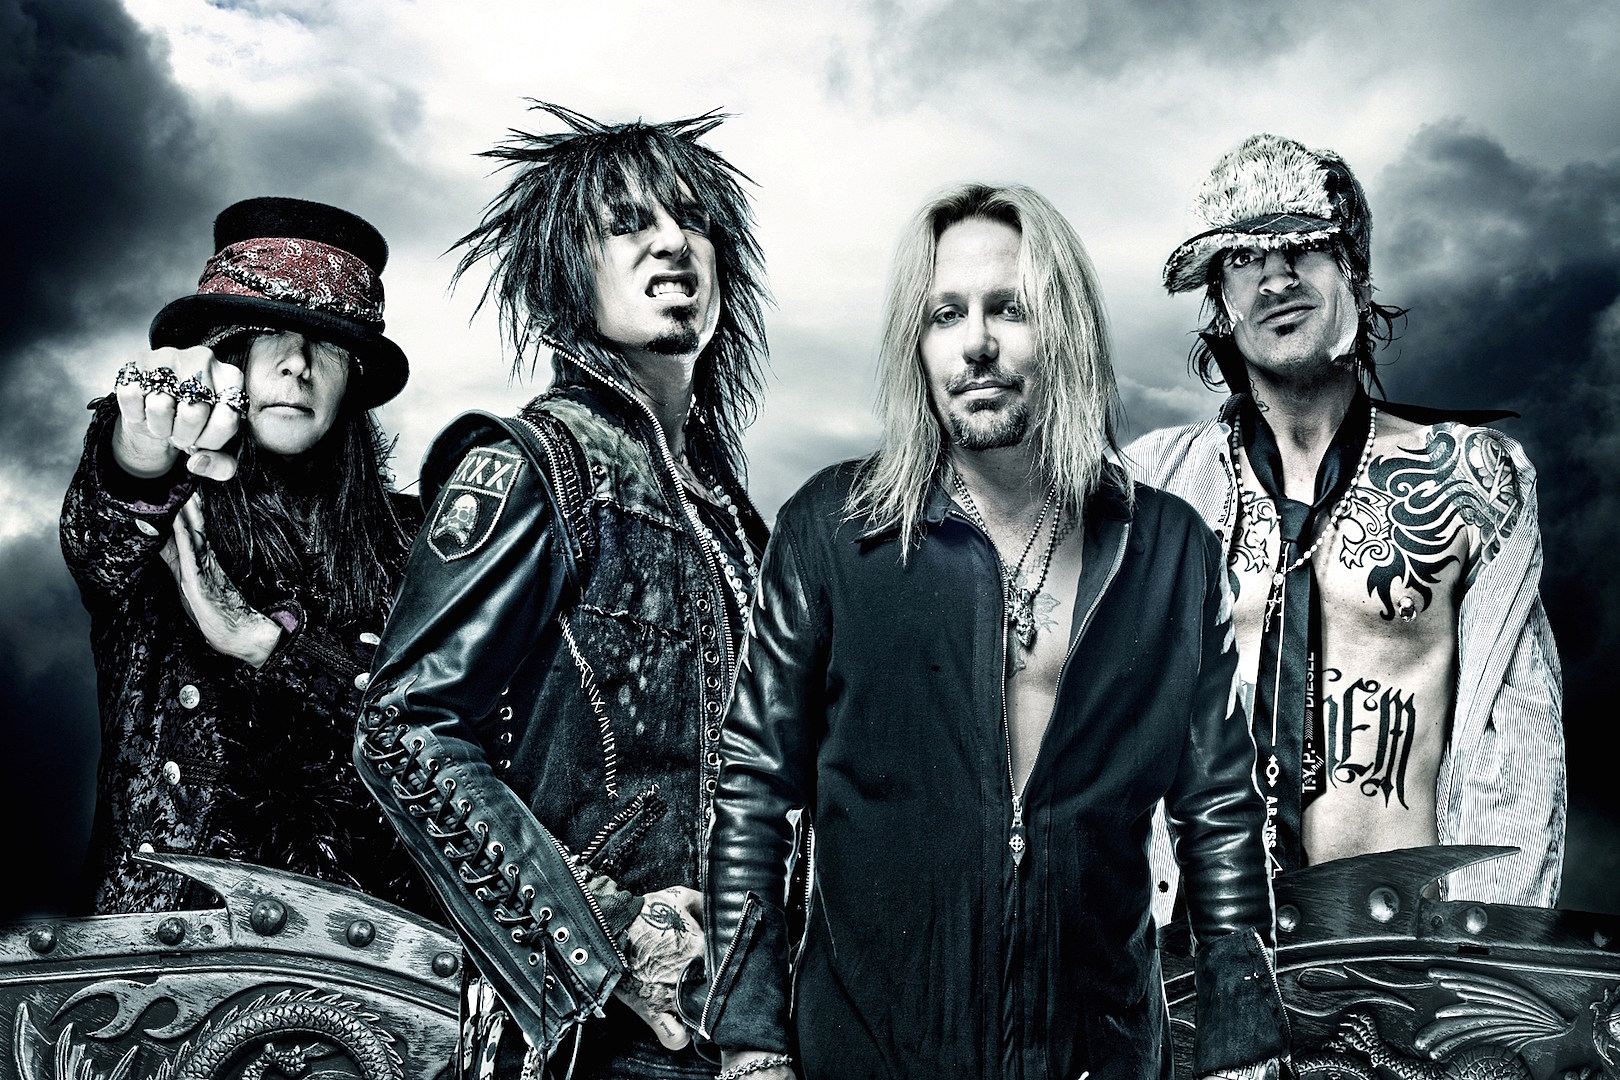 Motley Crue Release Statement Officially Confirming Reunion